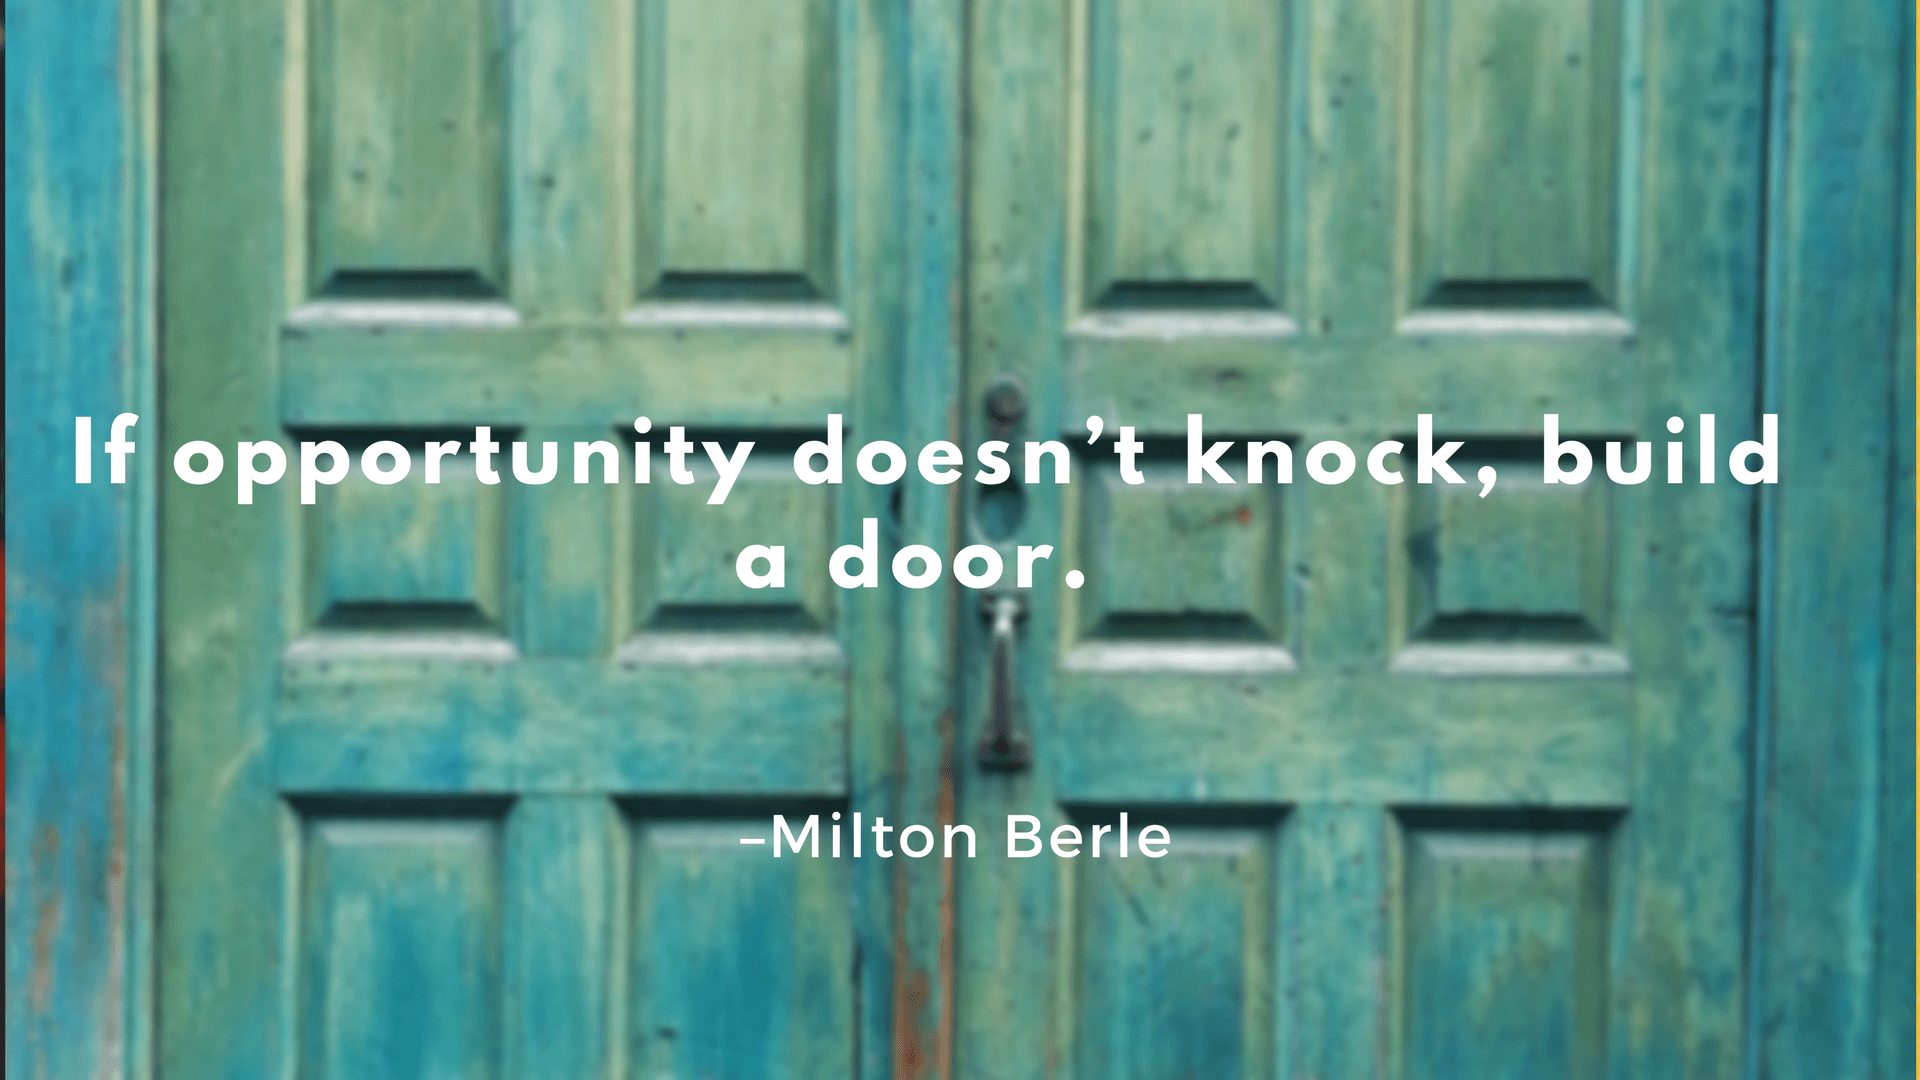 Milton Berle quote